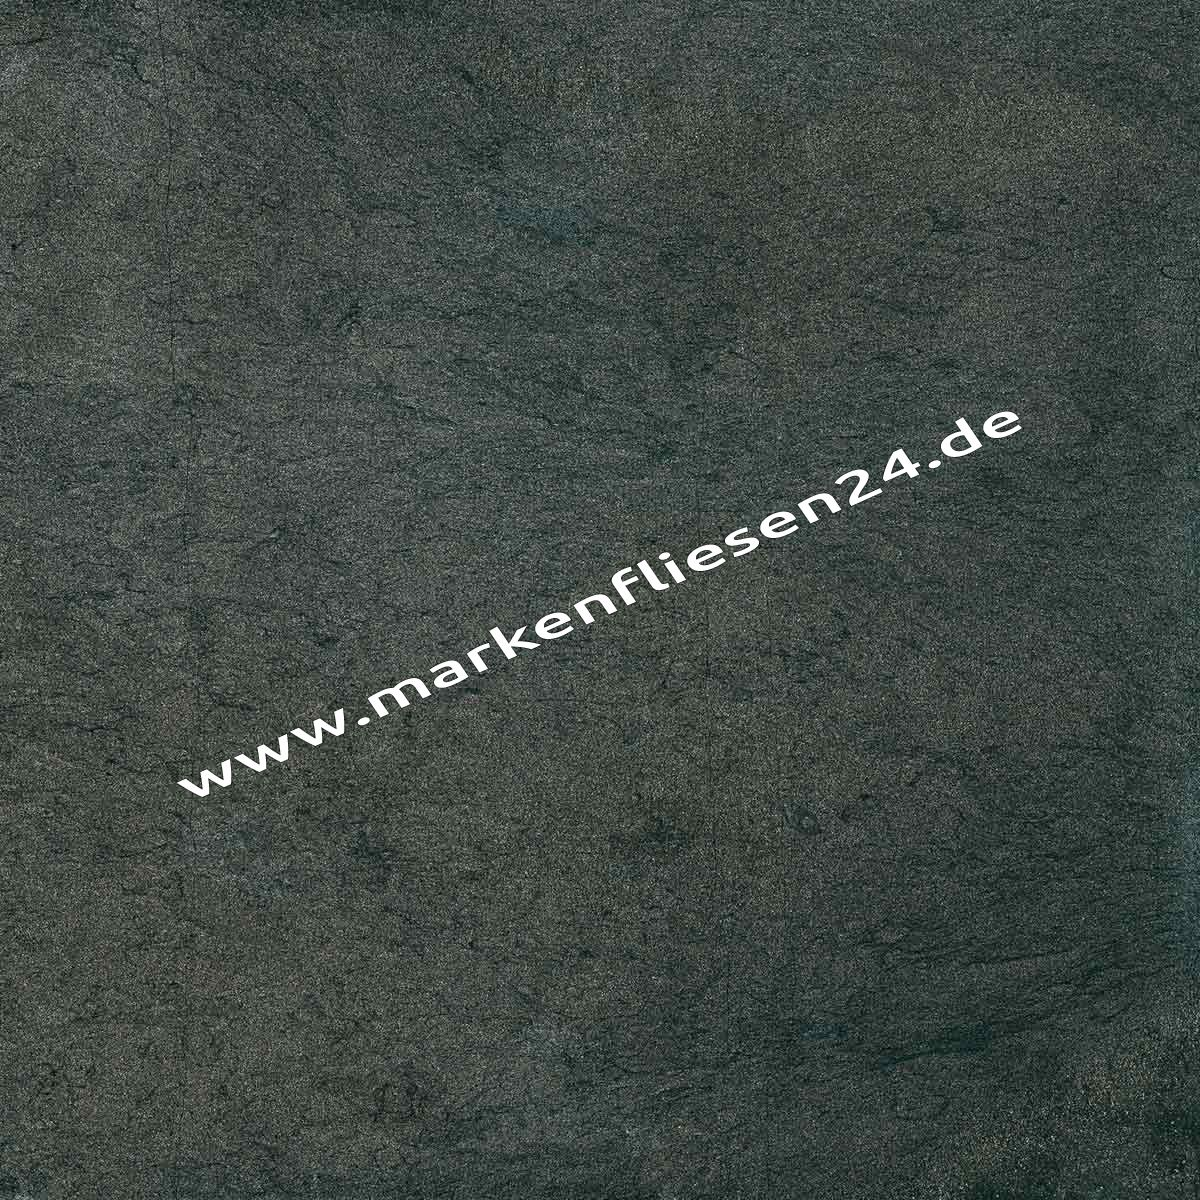 Mirage feinsteinzeug 60x60 cm november cold nm03 1 sorte fliesen outlet - Fliesenforum karlsruhe ...